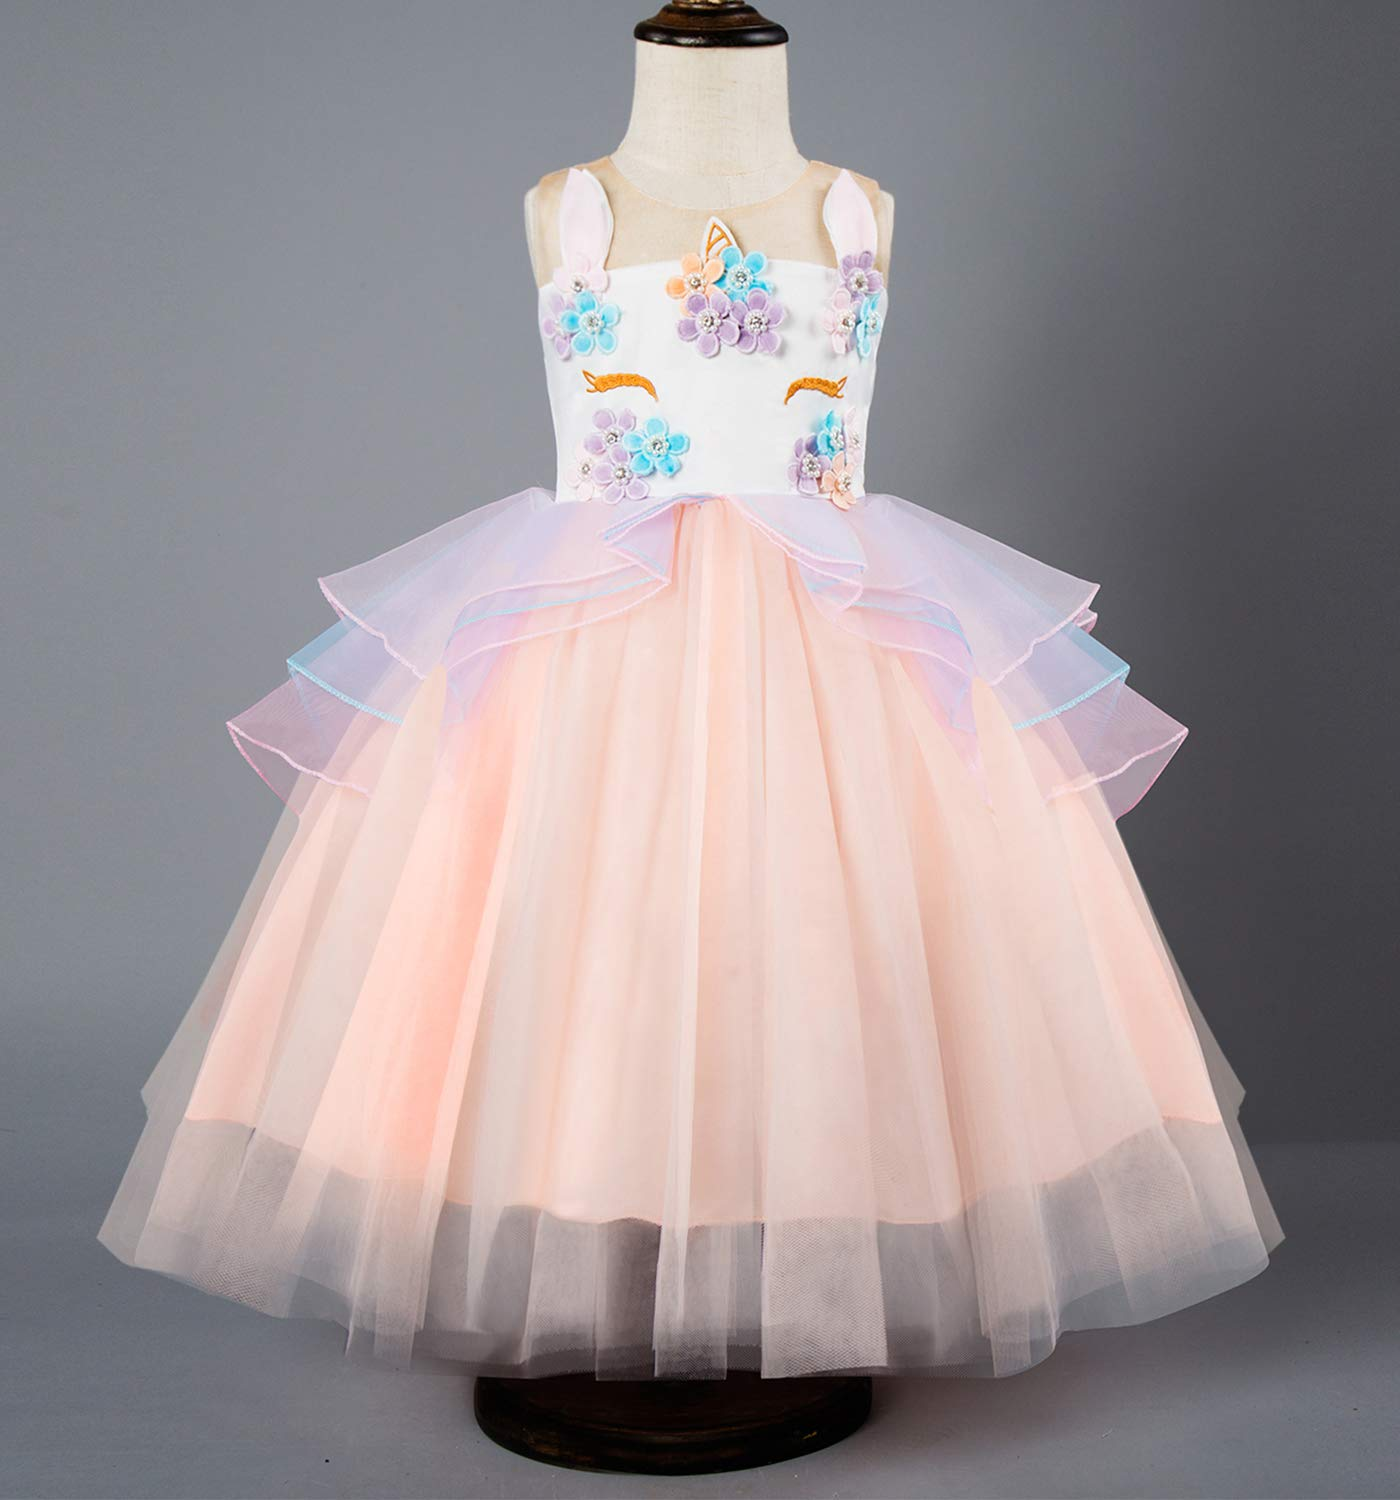 TTYAOVO Kids Unicorn Costume Dress Girl Princess Flower Pageant Party Tutu Dresses Size 5-6 Years Pink by TTYAOVO (Image #2)